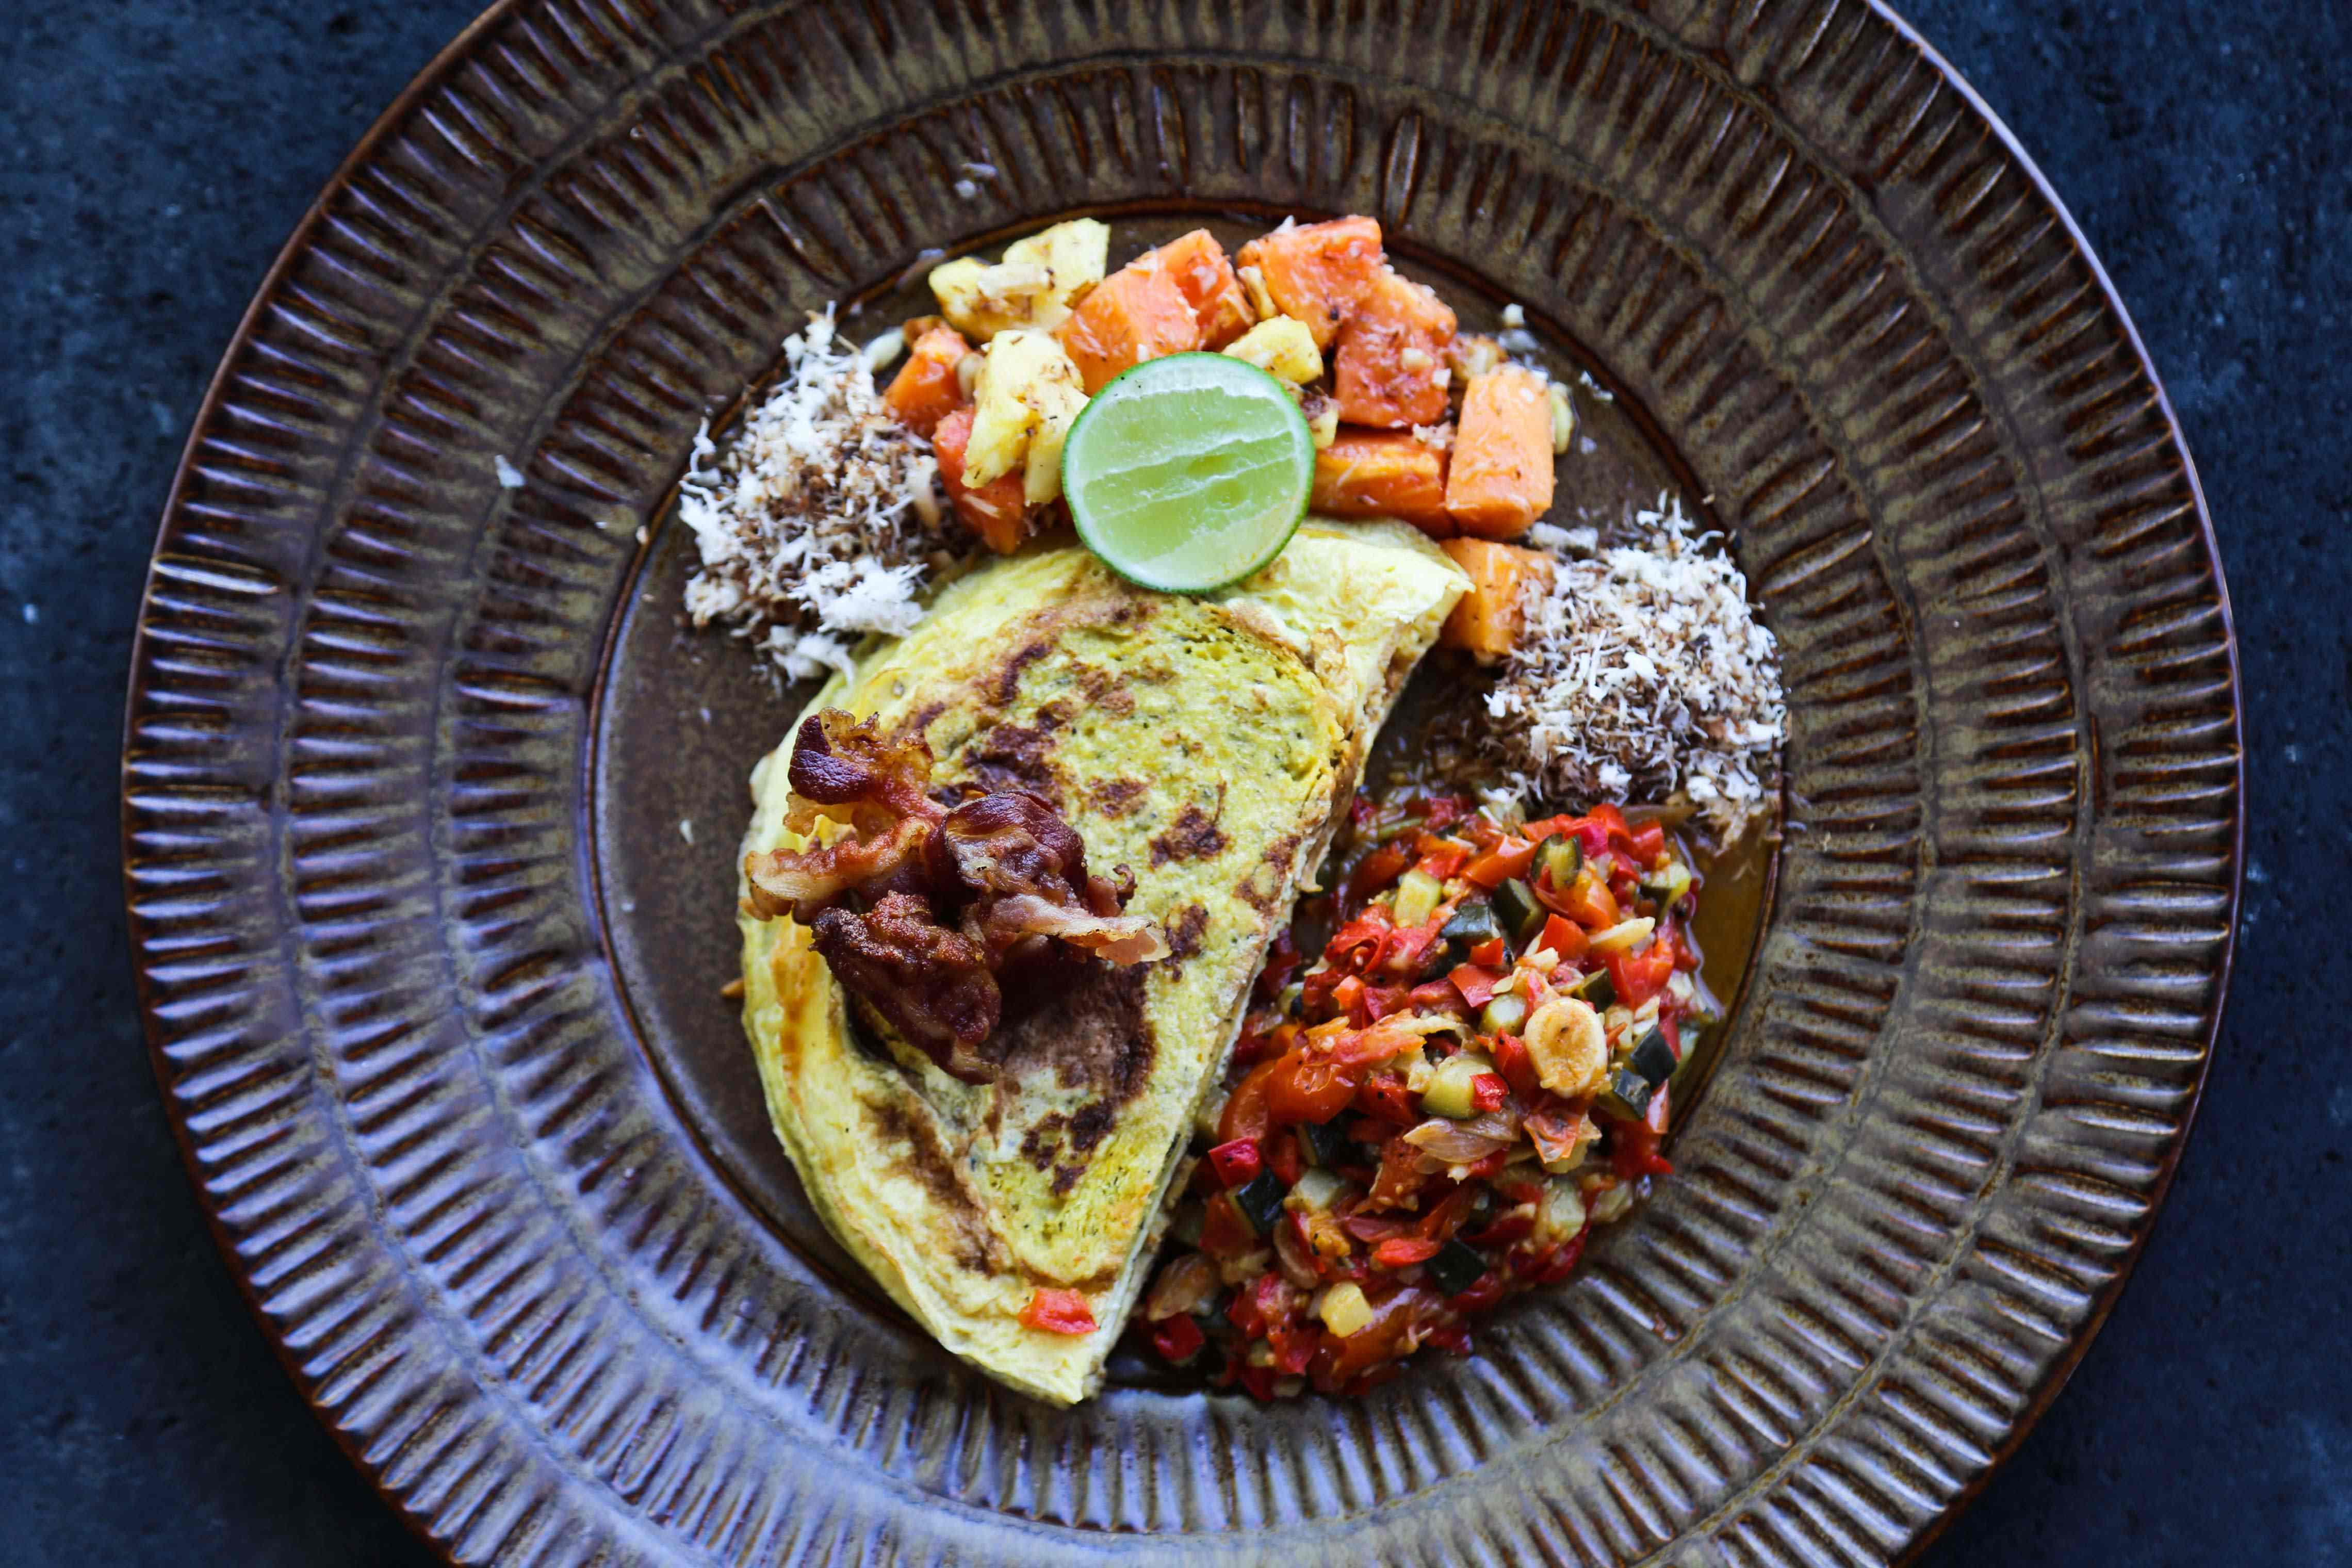 A meal cooked up by chef Josh Davies in Bali